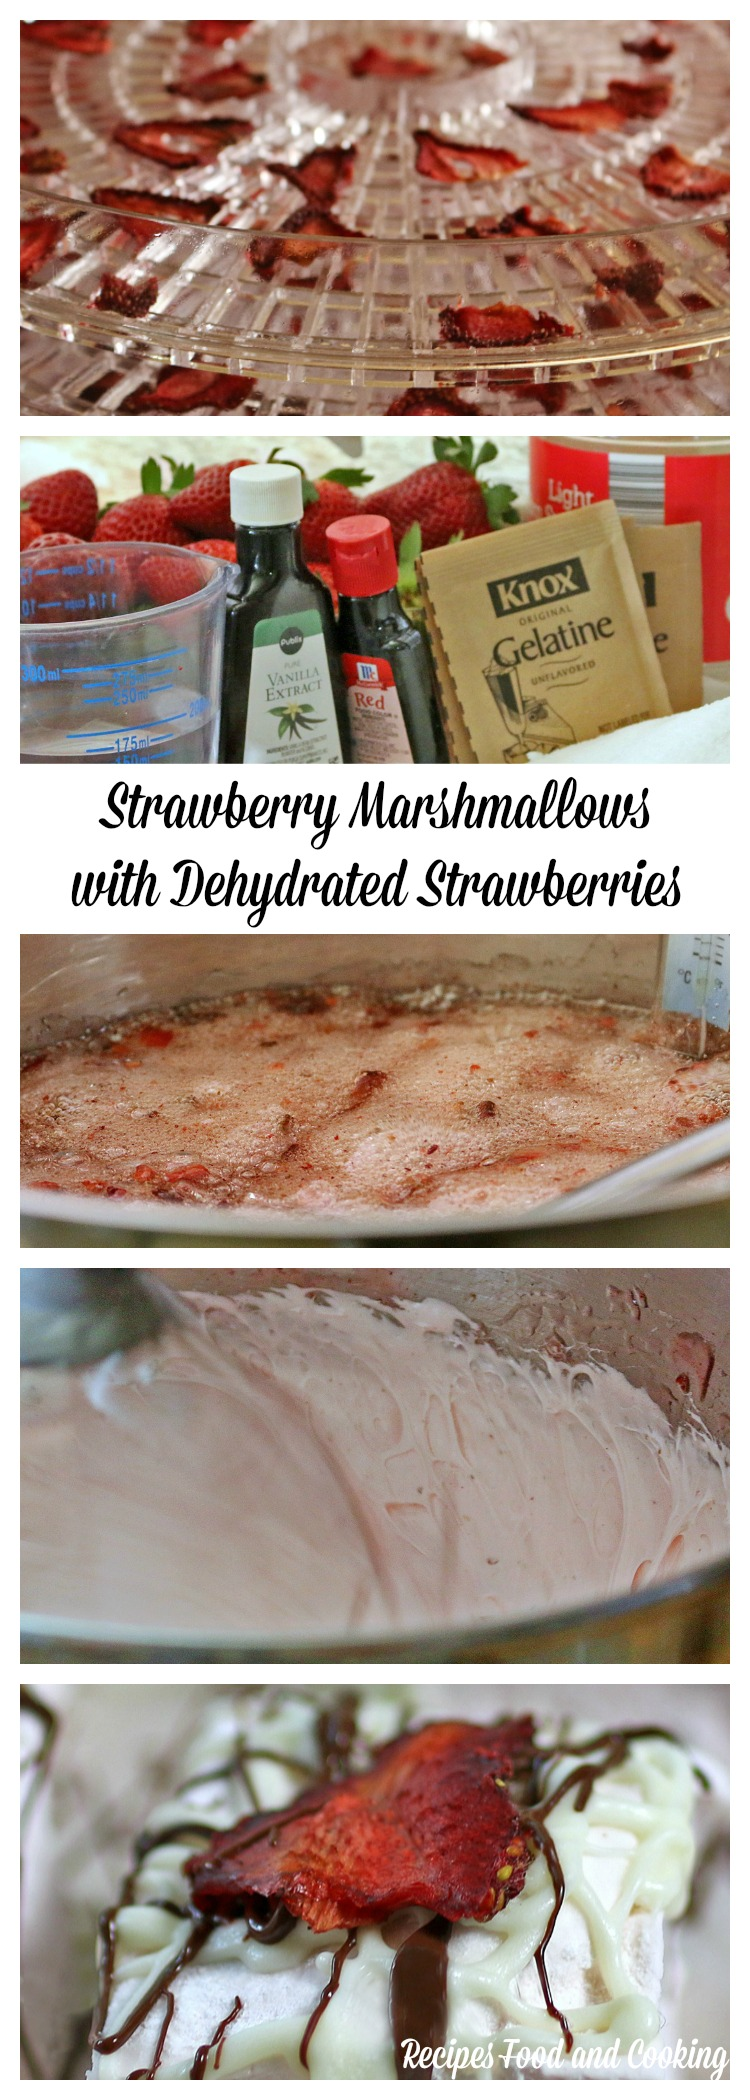 Strawberry Marshmallows with Dehydrated Strawberries